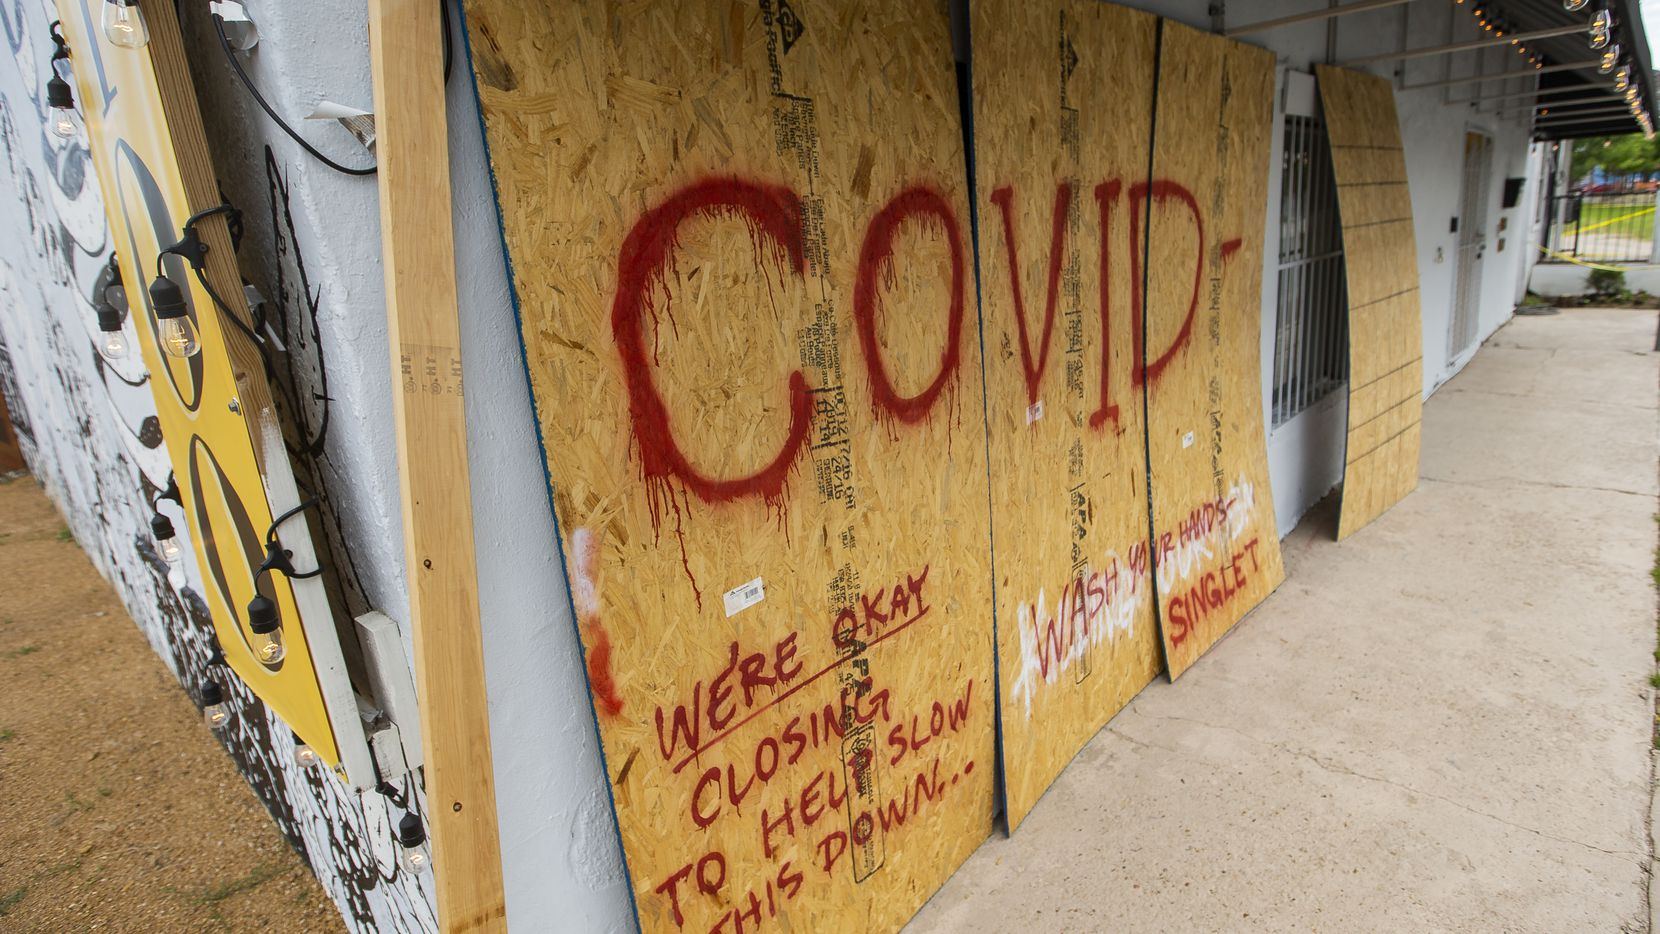 Boarded up windows at Singleton Tattoo, which is closed because of the coronavirus outbreak, on April 18, 2020 in Dallas.